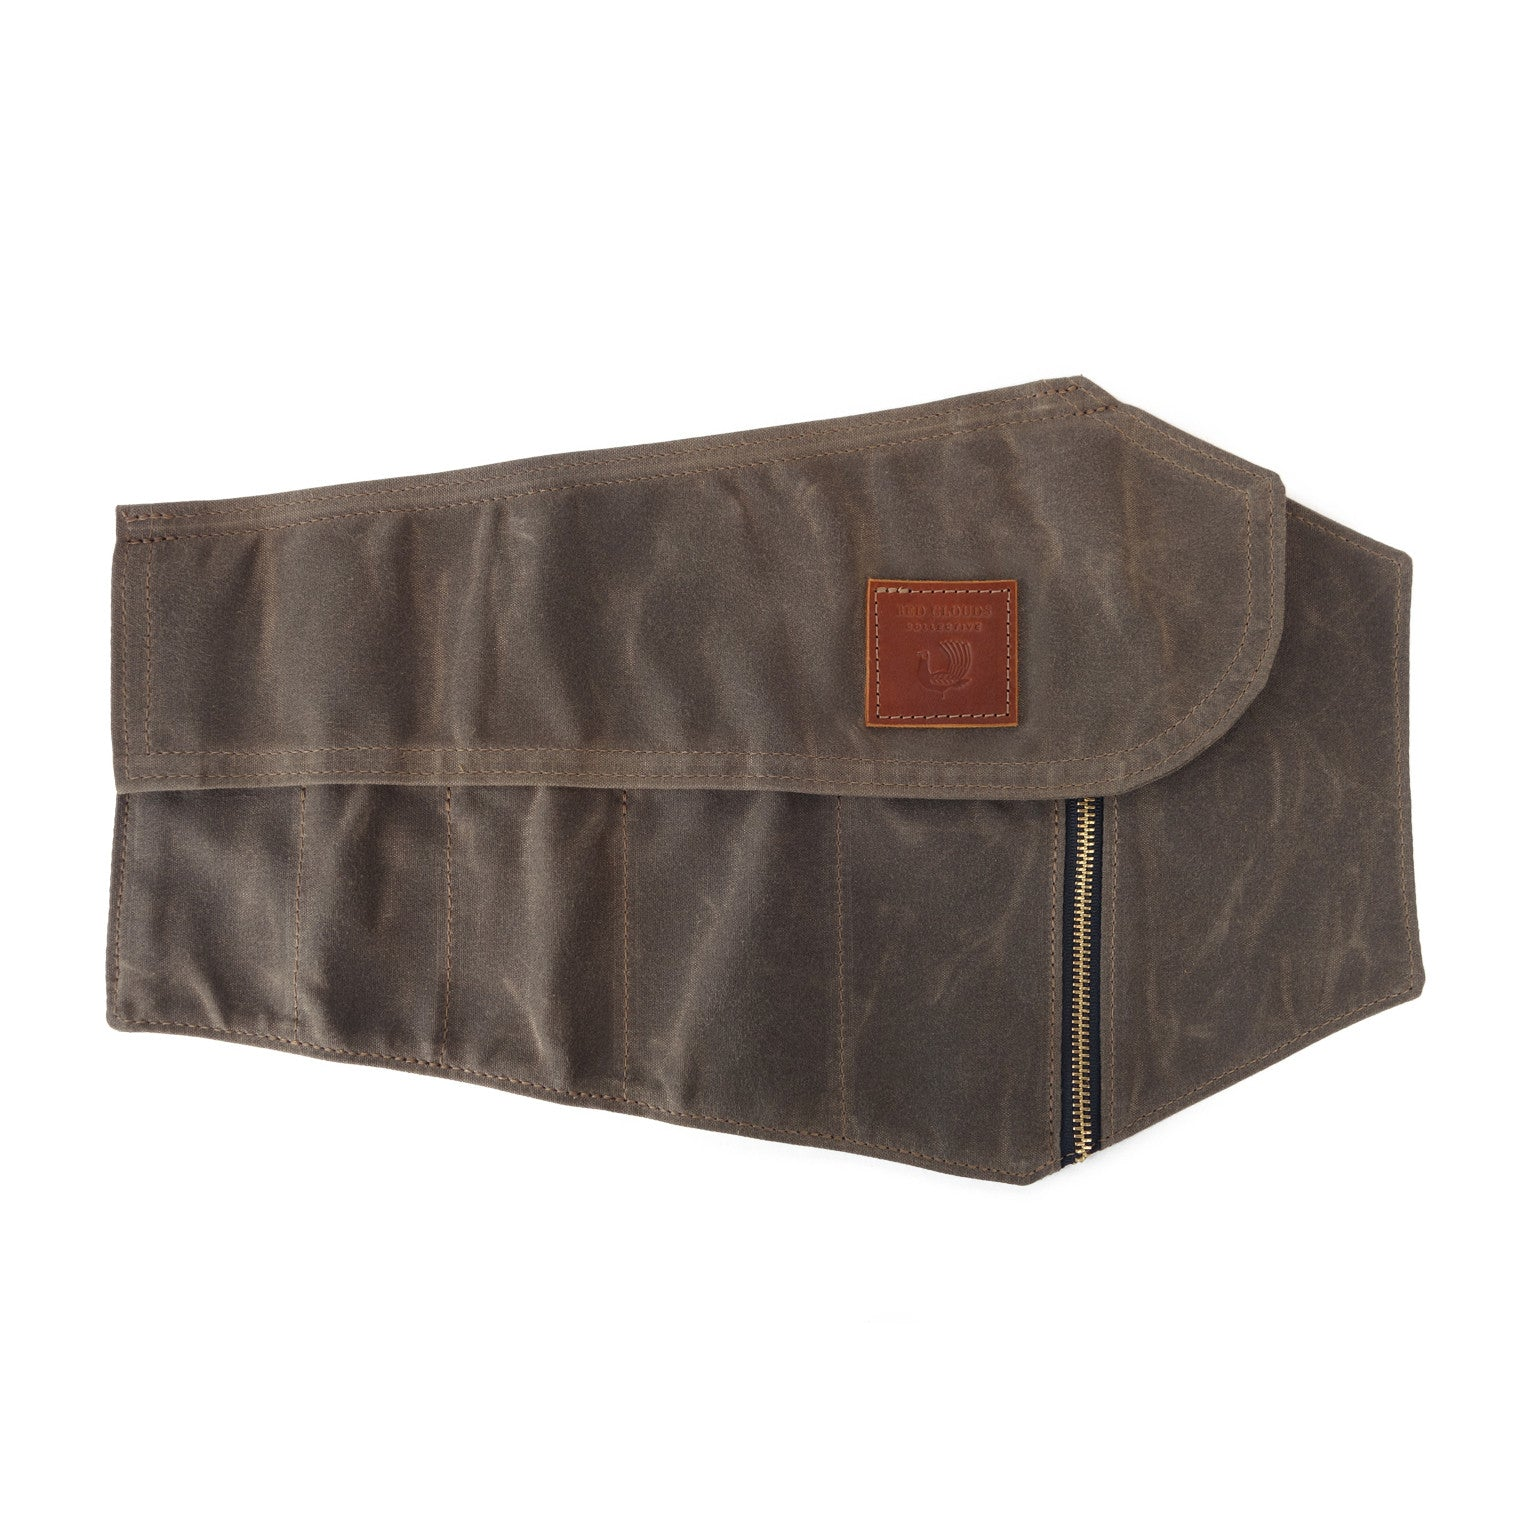 Coffin tool roll. A waxed canvas tool roll with 5 pockets for various sized tools and one side pocket with a YKK zipper to keep any loose parts safe and secure.